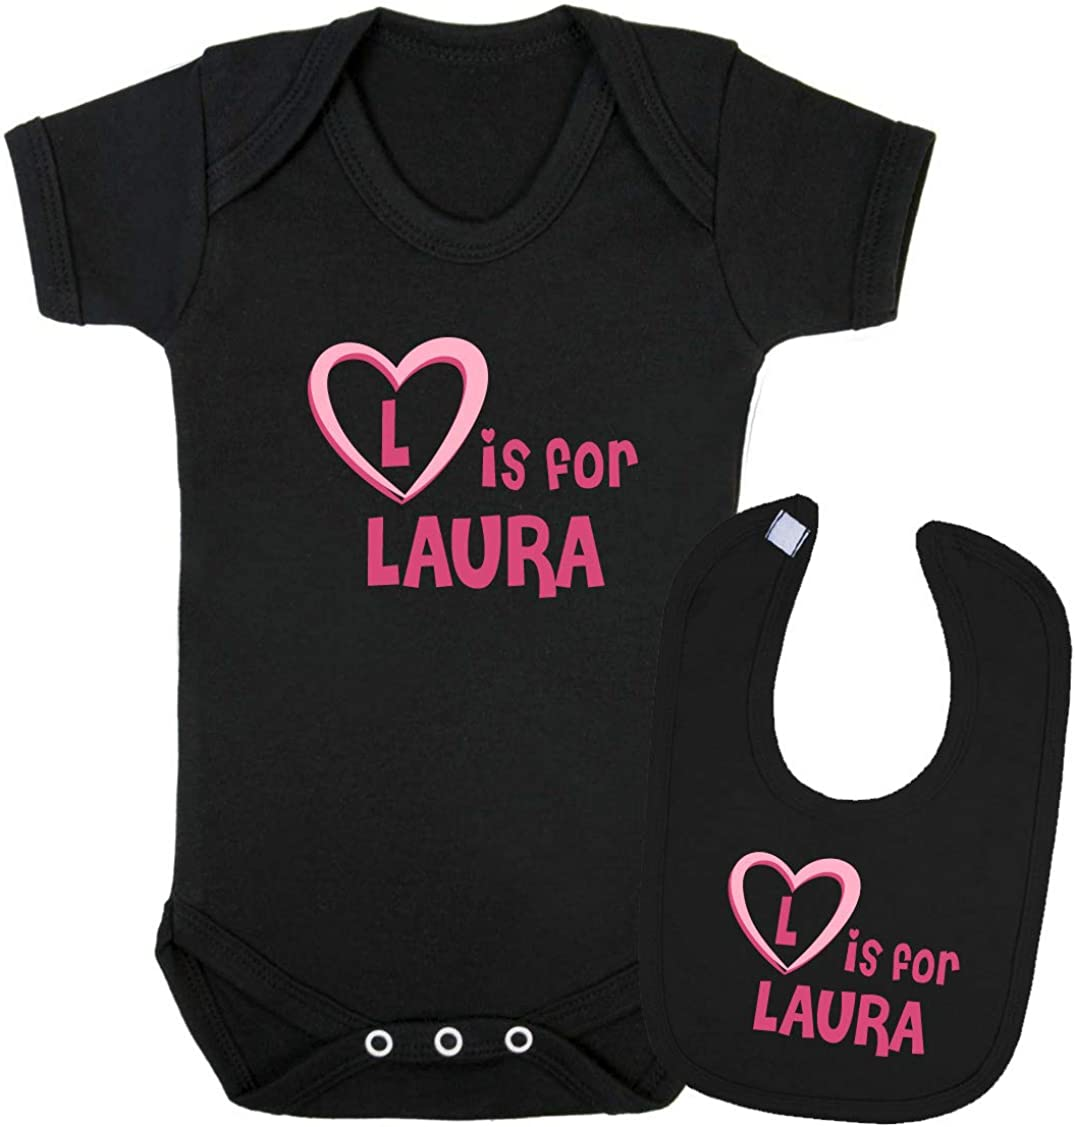 Vest and Bib L is for Laura Baby Gift Set